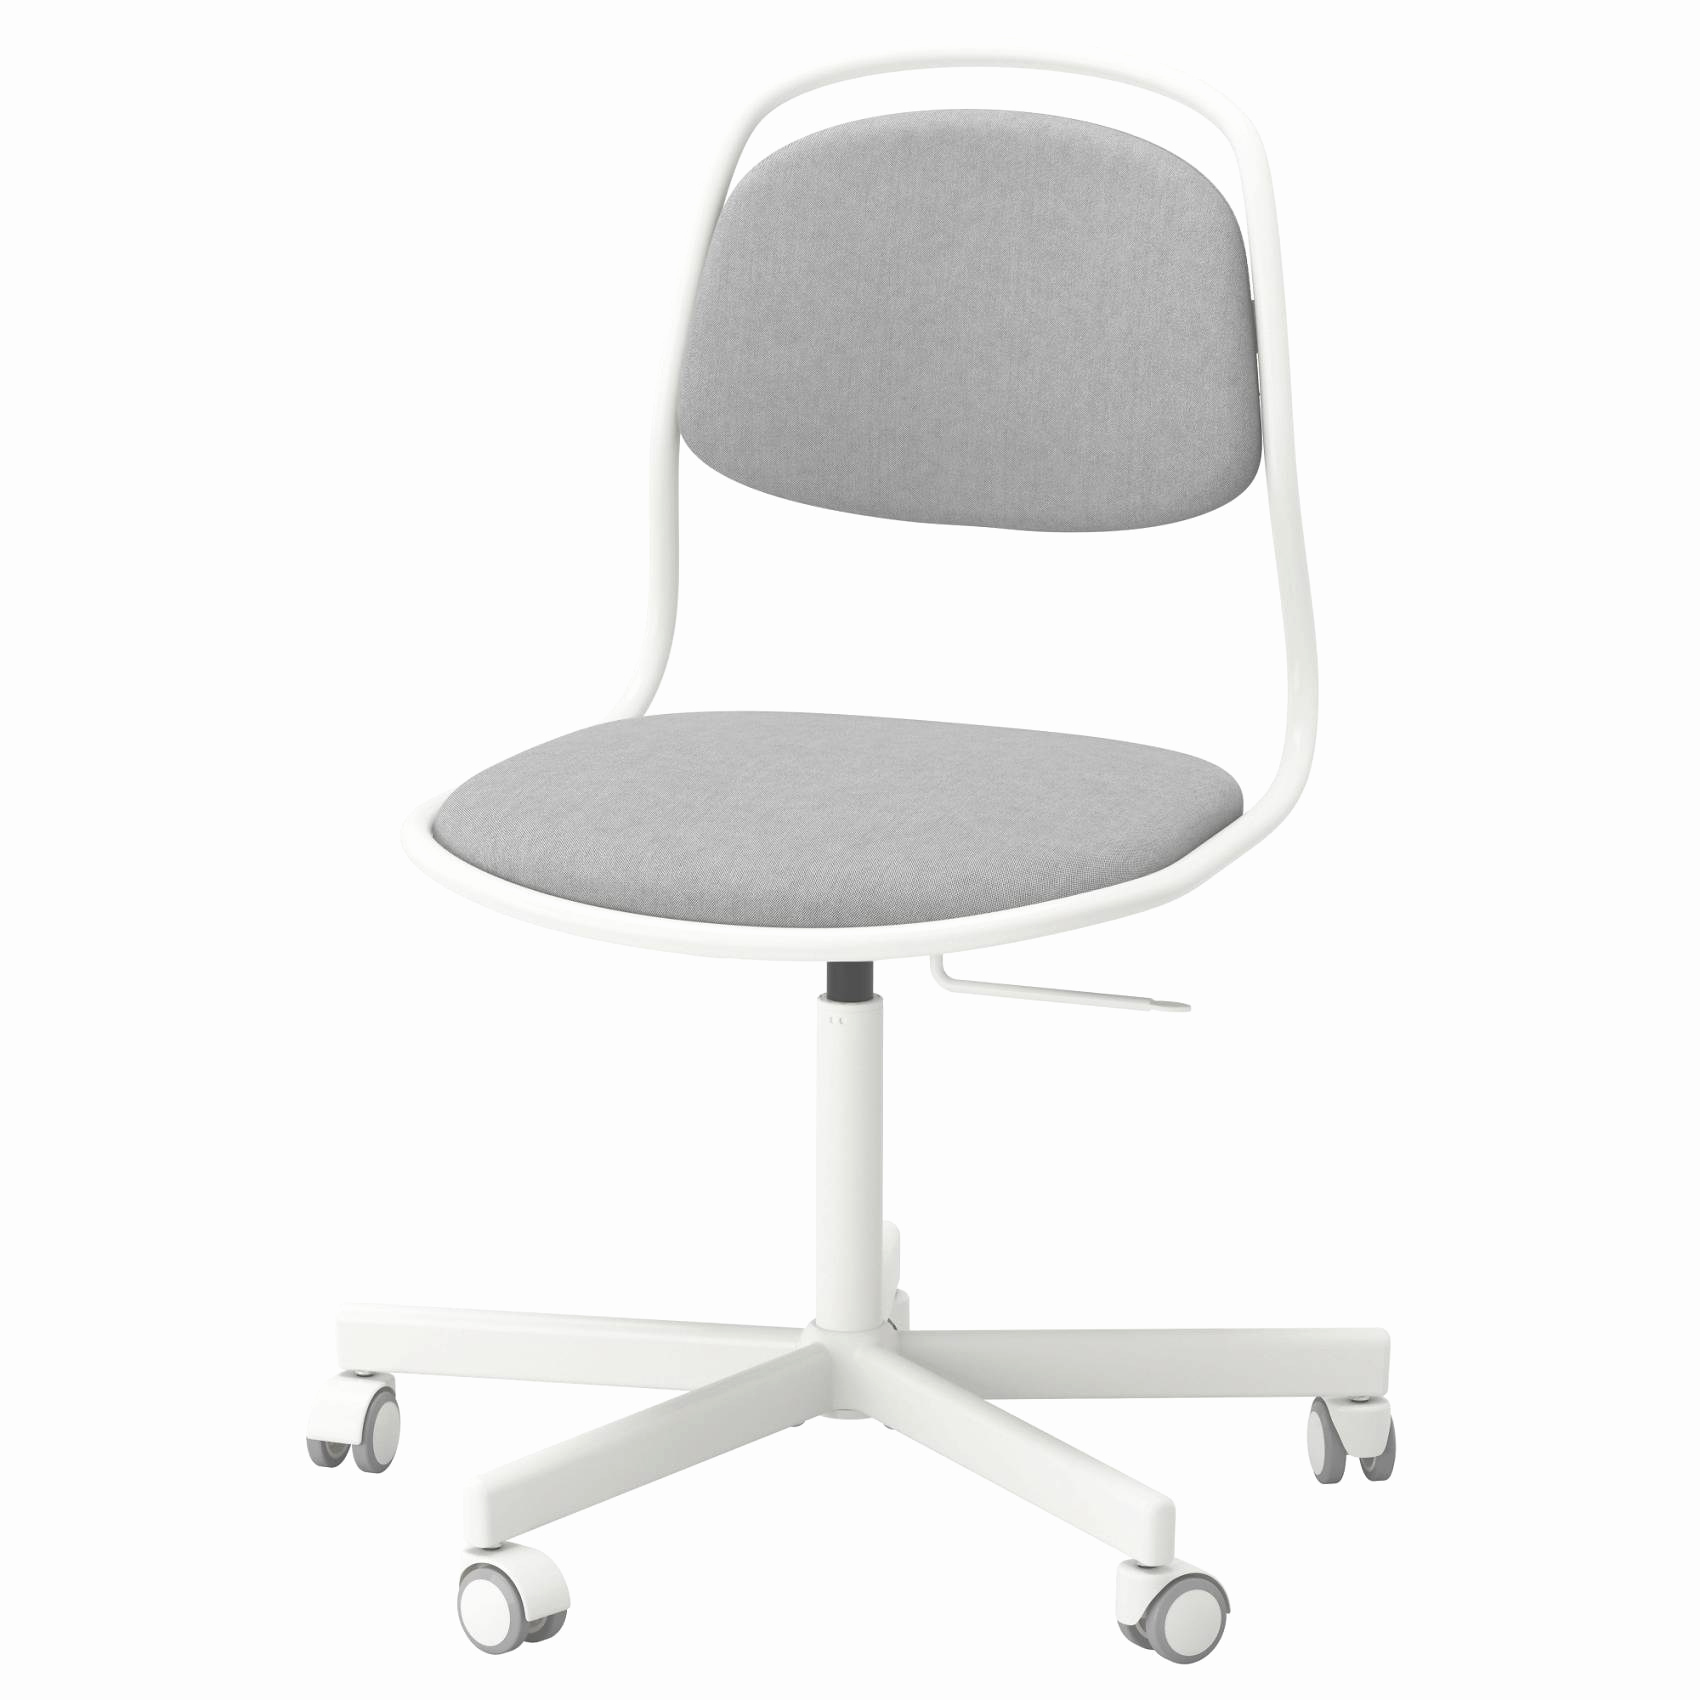 Brise Bise Ikea Inspirant Stock 27 Impressionnant Ikea Chaises Salle € Manger